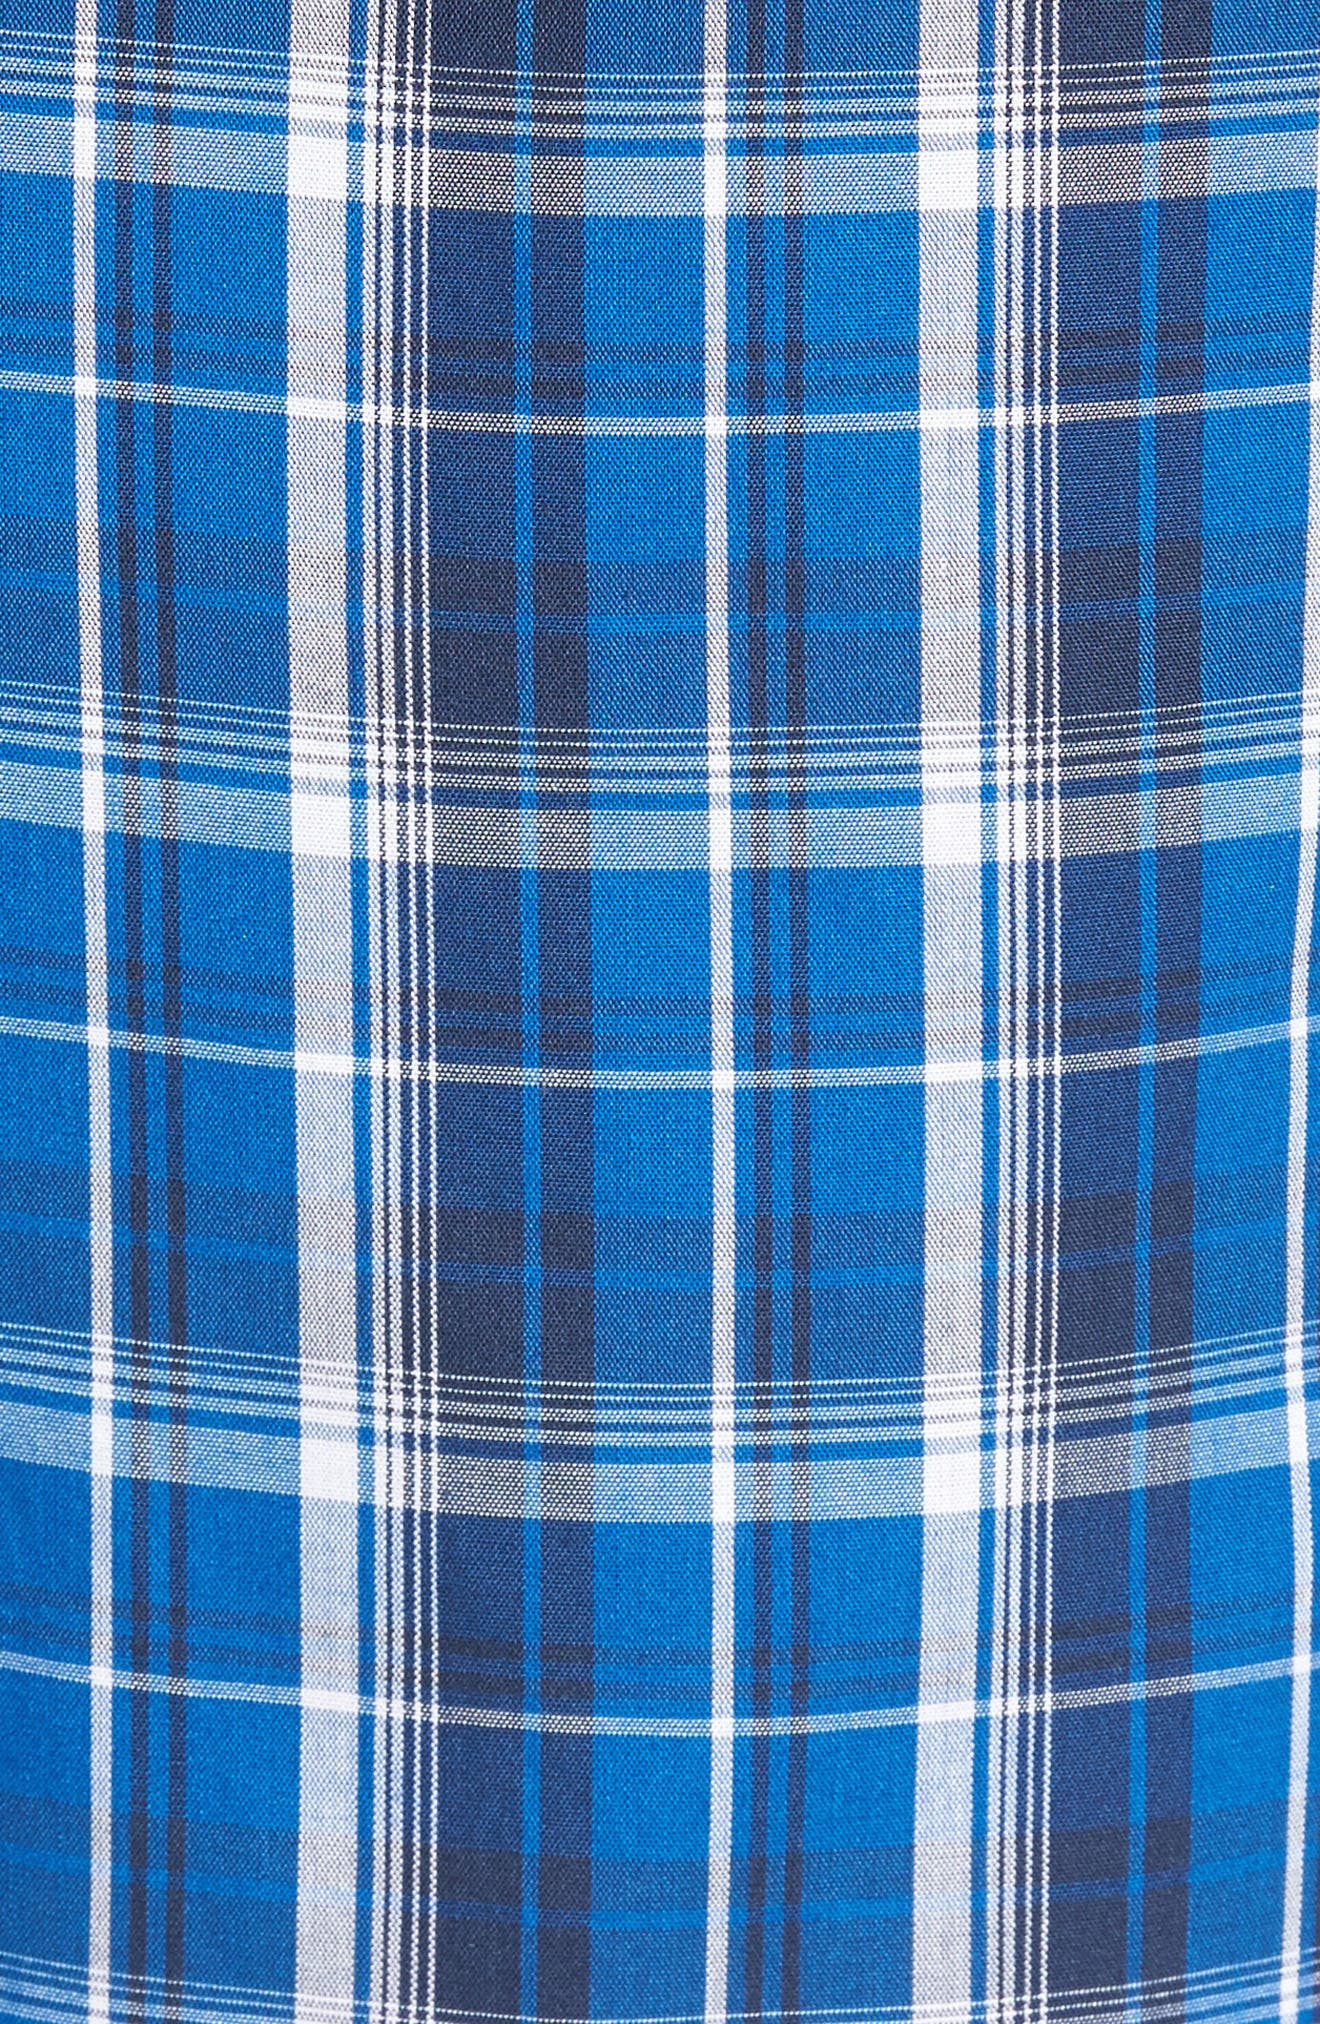 Poplin Lounge Shorts,                             Alternate thumbnail 5, color,                             Blue Marmara Plaid